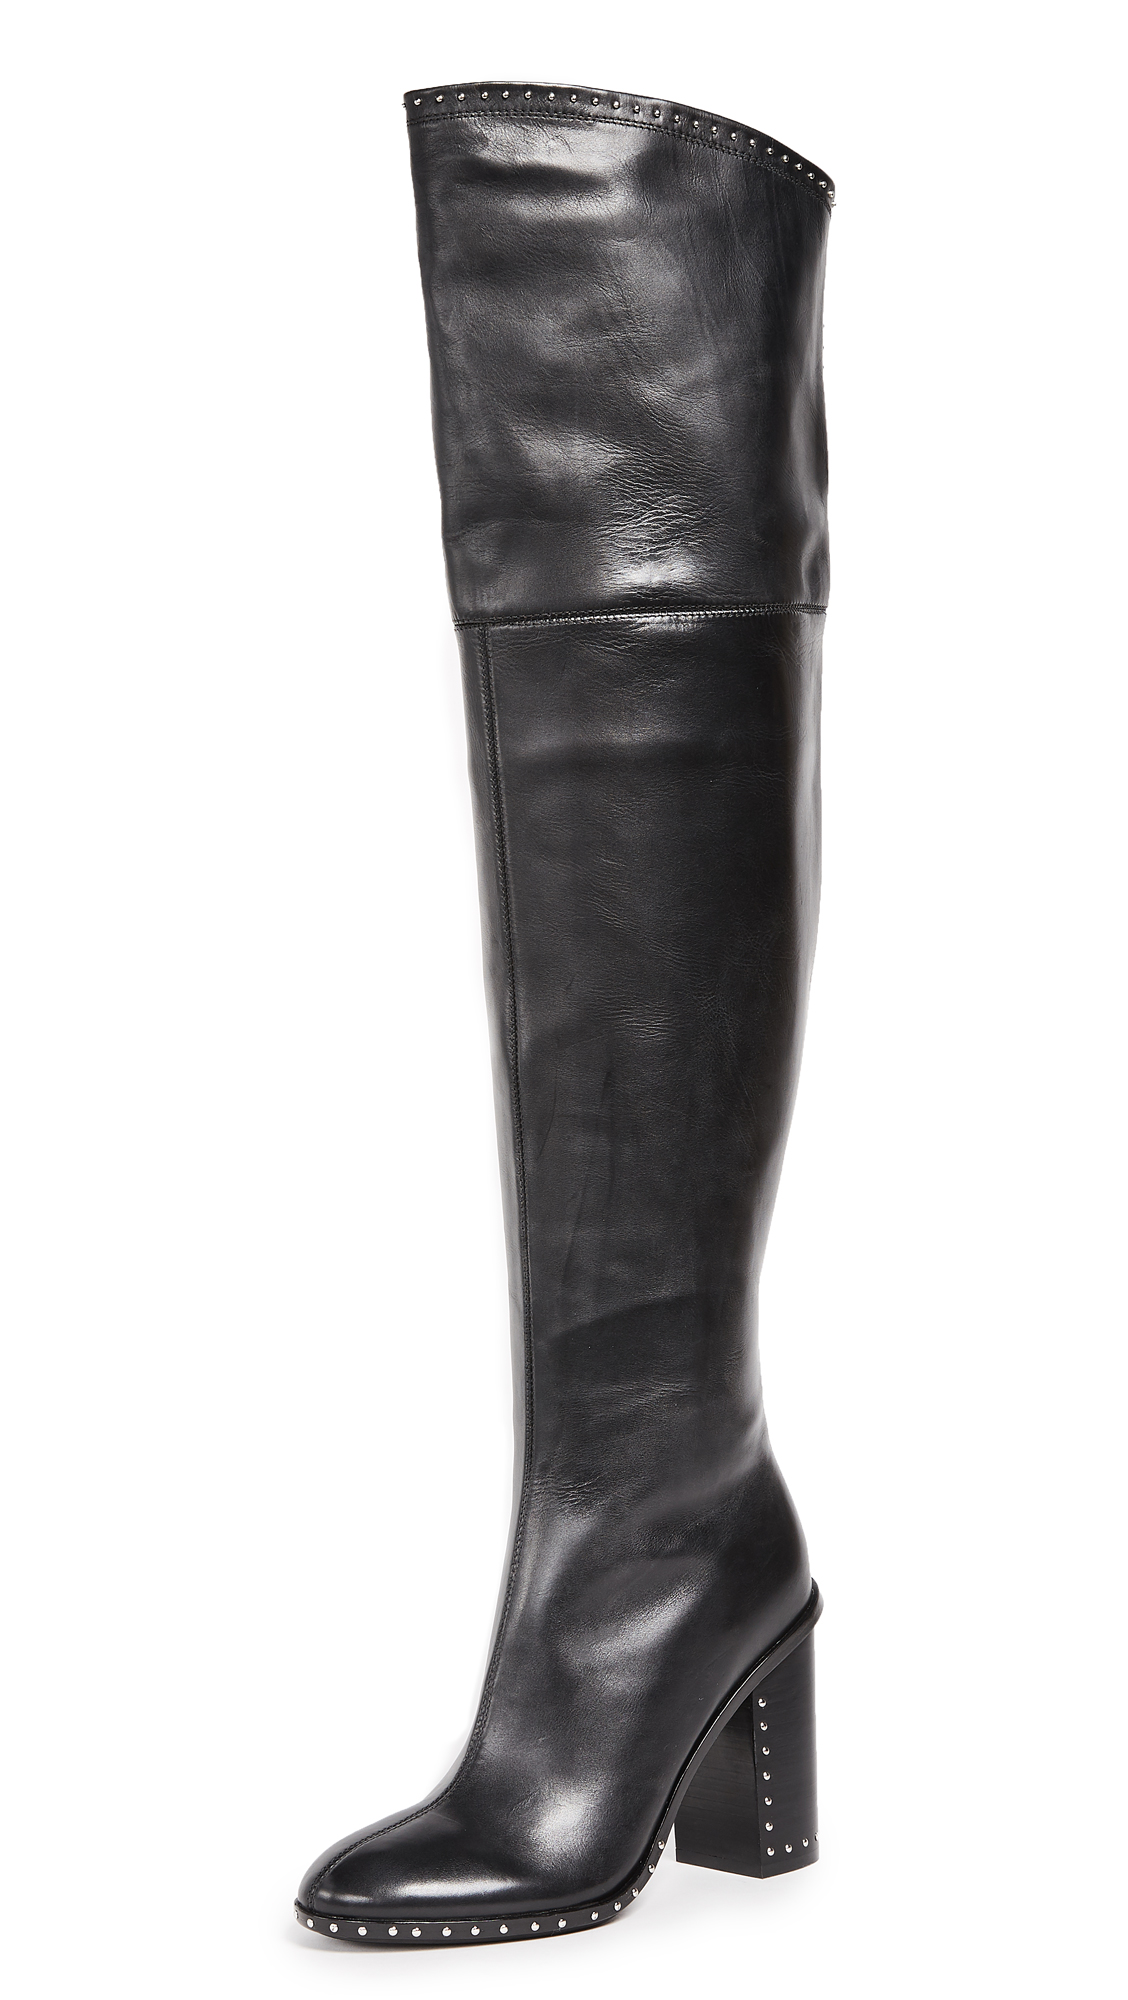 Sigerson Morrison Mars Thigh High Boots - Black